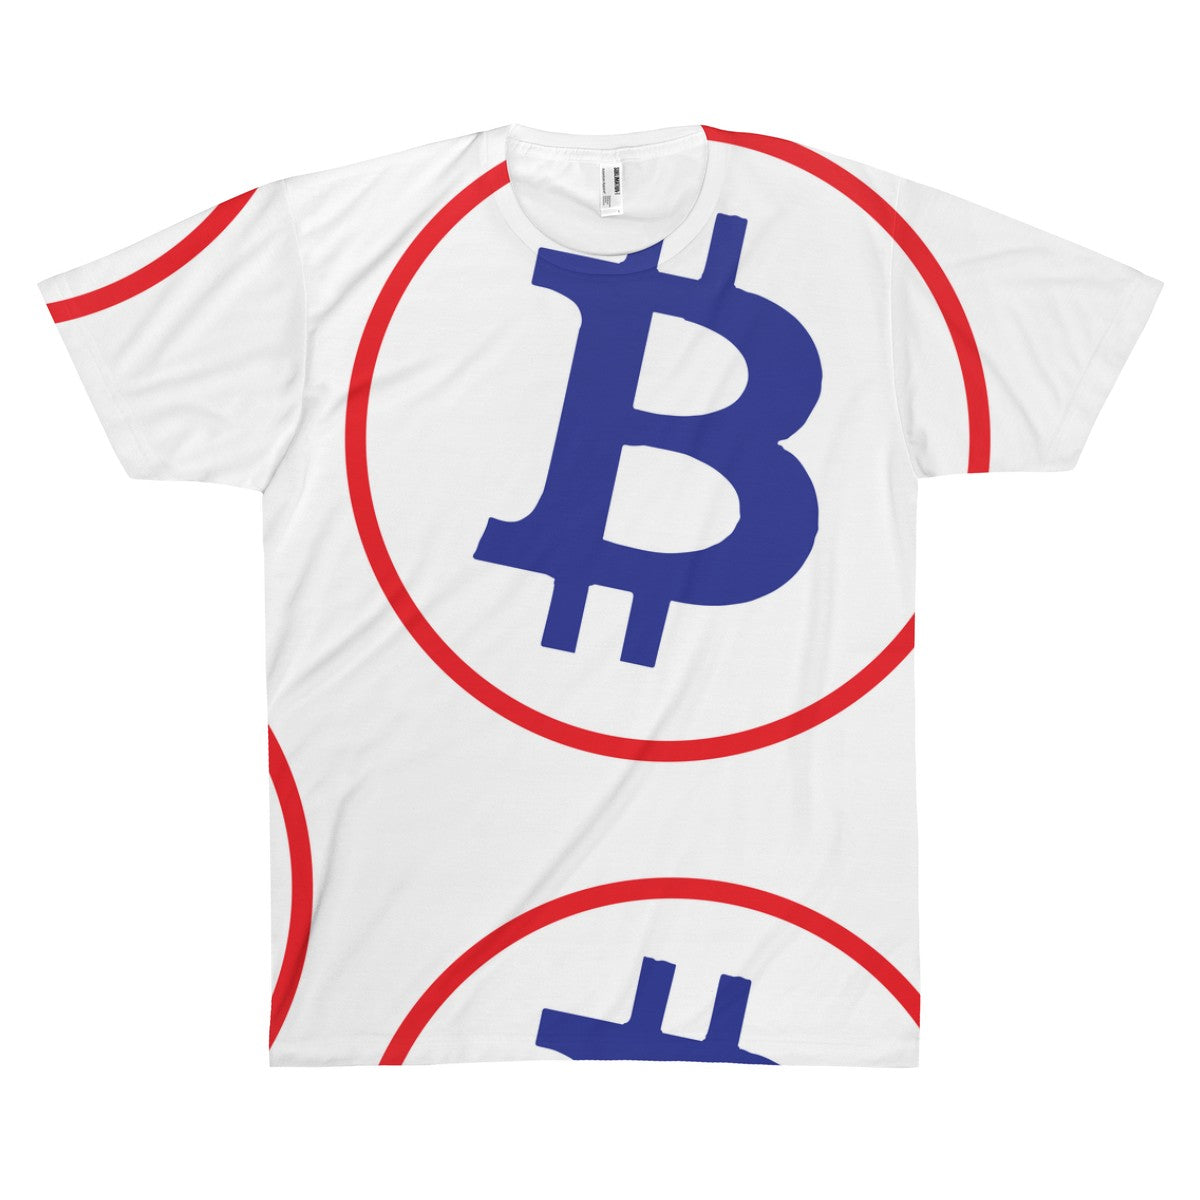 The 'BTC Bold' Sublimated Tee in White